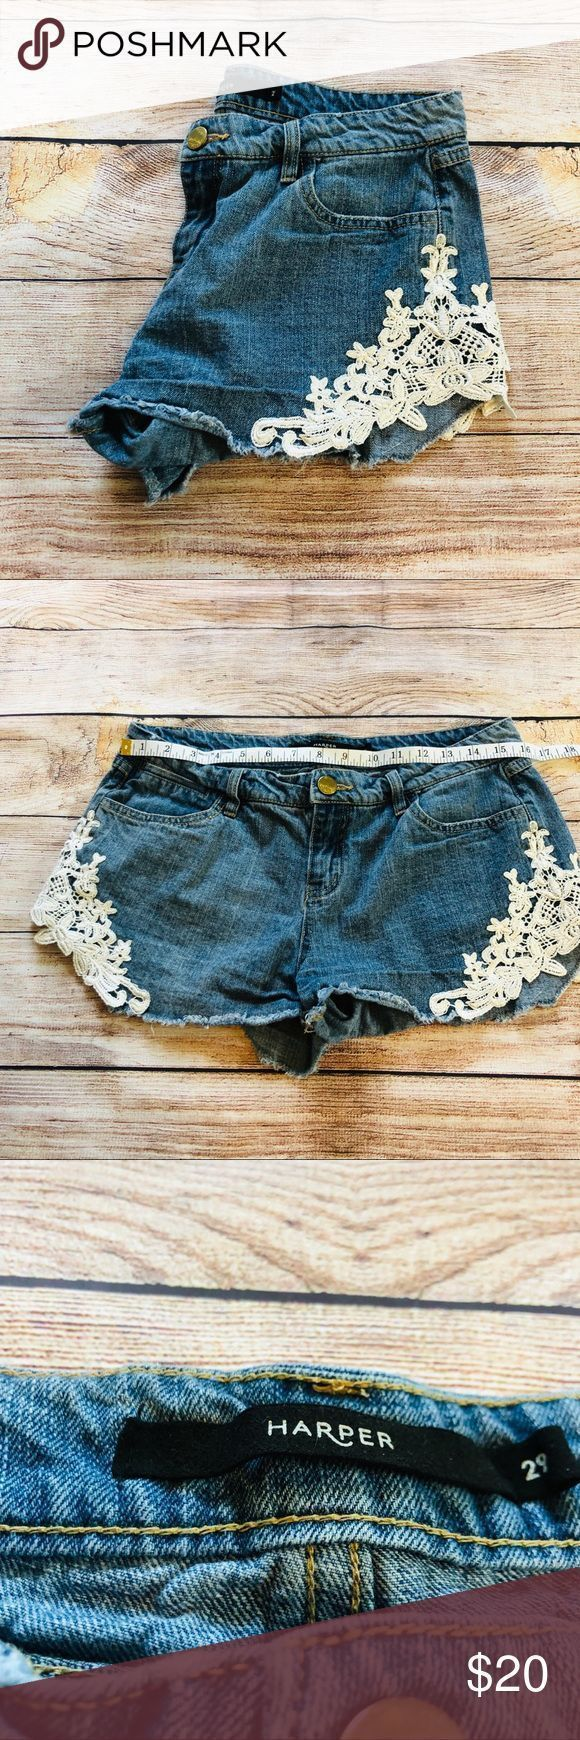 Harper lace denim cutoff shorts Harper lace denim cutoff shorts Size 29 Harper f#BeautyBlog #MakeupOfTheDay #MakeupByMe #MakeupLife #MakeupTutorial #InstaMakeup #MakeupLover #Cosmetics #BeautyBasics #MakeupJunkie #InstaBeauty #ILoveMakeup #WakeUpAndMakeup #MakeupGuru #BeautyProducts #denimcutoffshorts Harper lace denim cutoff shorts Harper lace denim cutoff shorts Size 29 Harper f#BeautyBlog #MakeupOfTheDay #MakeupByMe #MakeupLife #MakeupTutorial #InstaMakeup #MakeupLover #Cosmetics #BeautyBasic #denimcutoffshorts